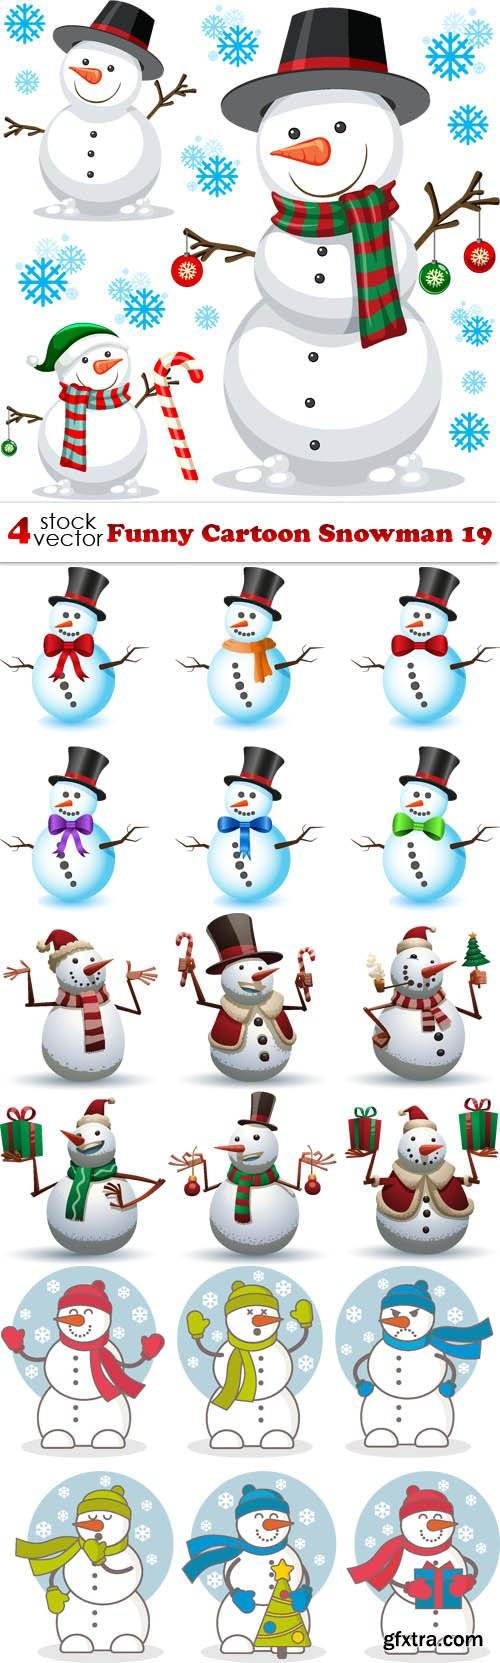 Vectors - Funny Cartoon Snowman 19